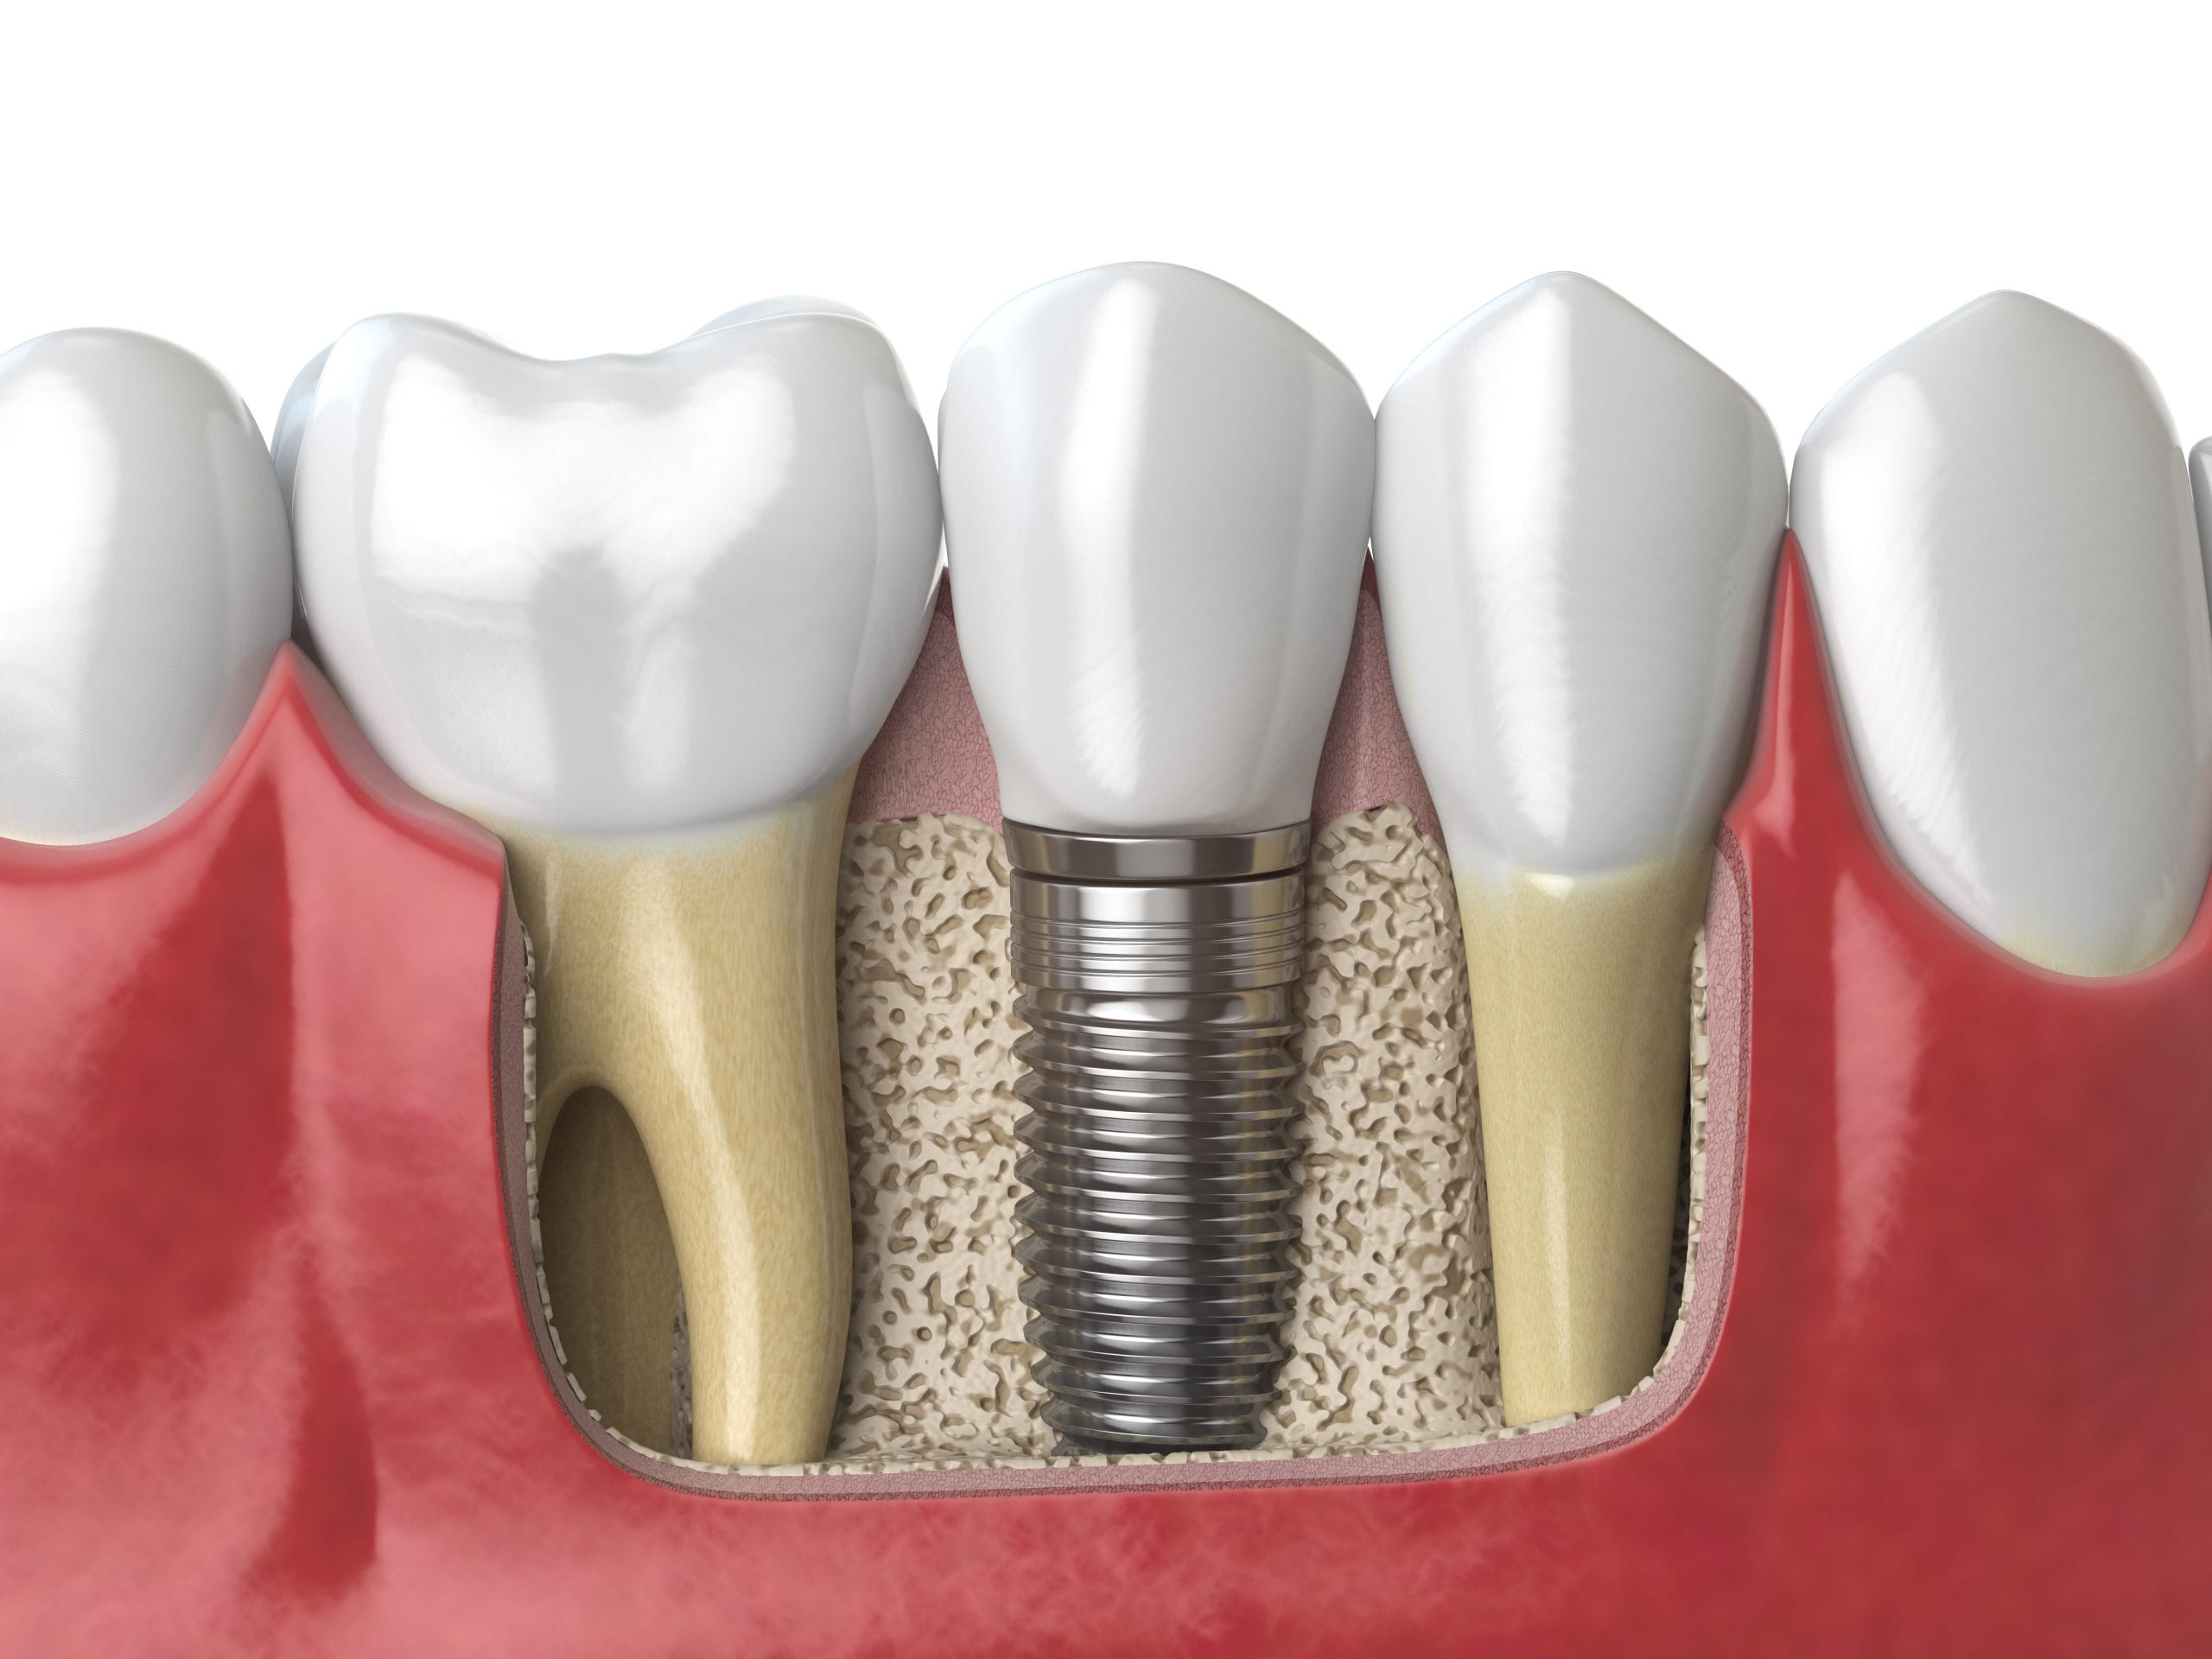 Dental Implants & Mini Implants: Which Is Right For Me? Boulder Dental Designs Dr. John Montoya, Dentist in Boulder, dental implants in boulder Anatomy of healthy teeth and tooth dental implant in human dentu